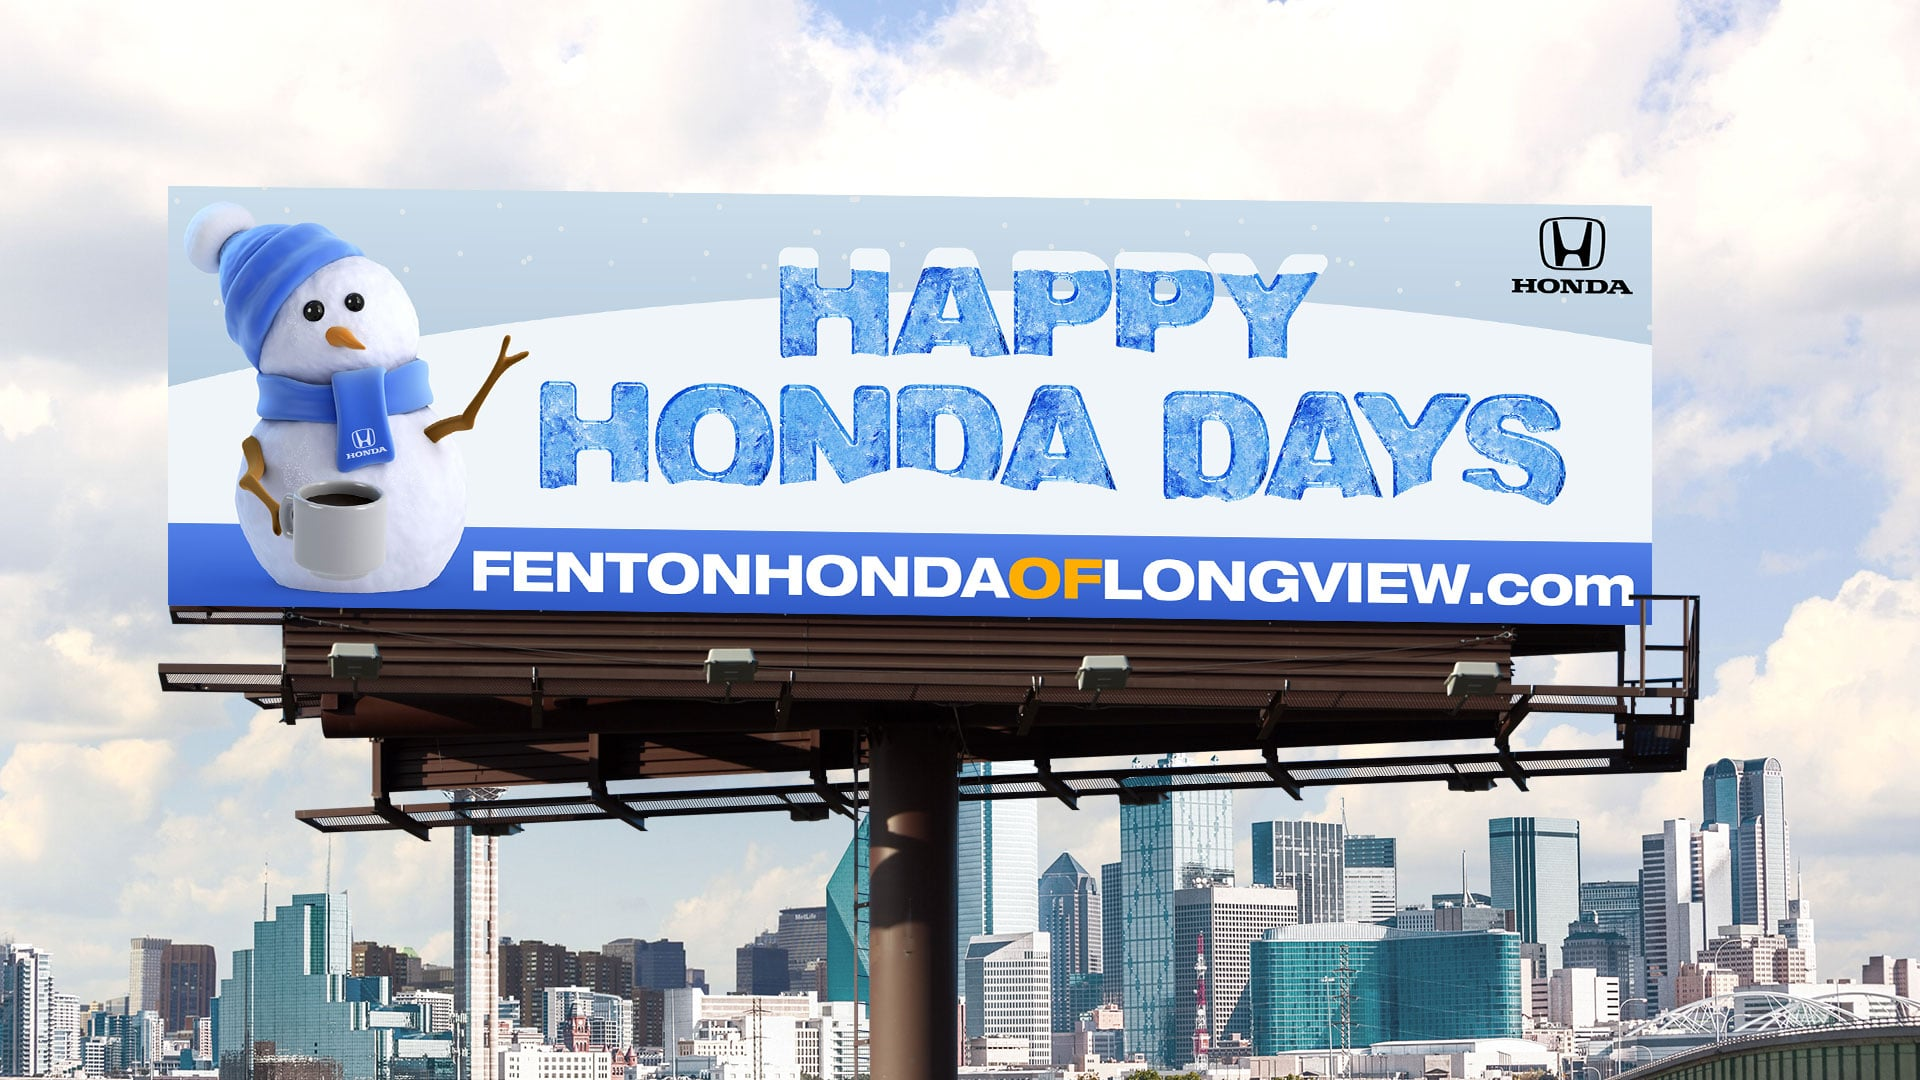 Billboard: Fenton Honda Happy Honda Days